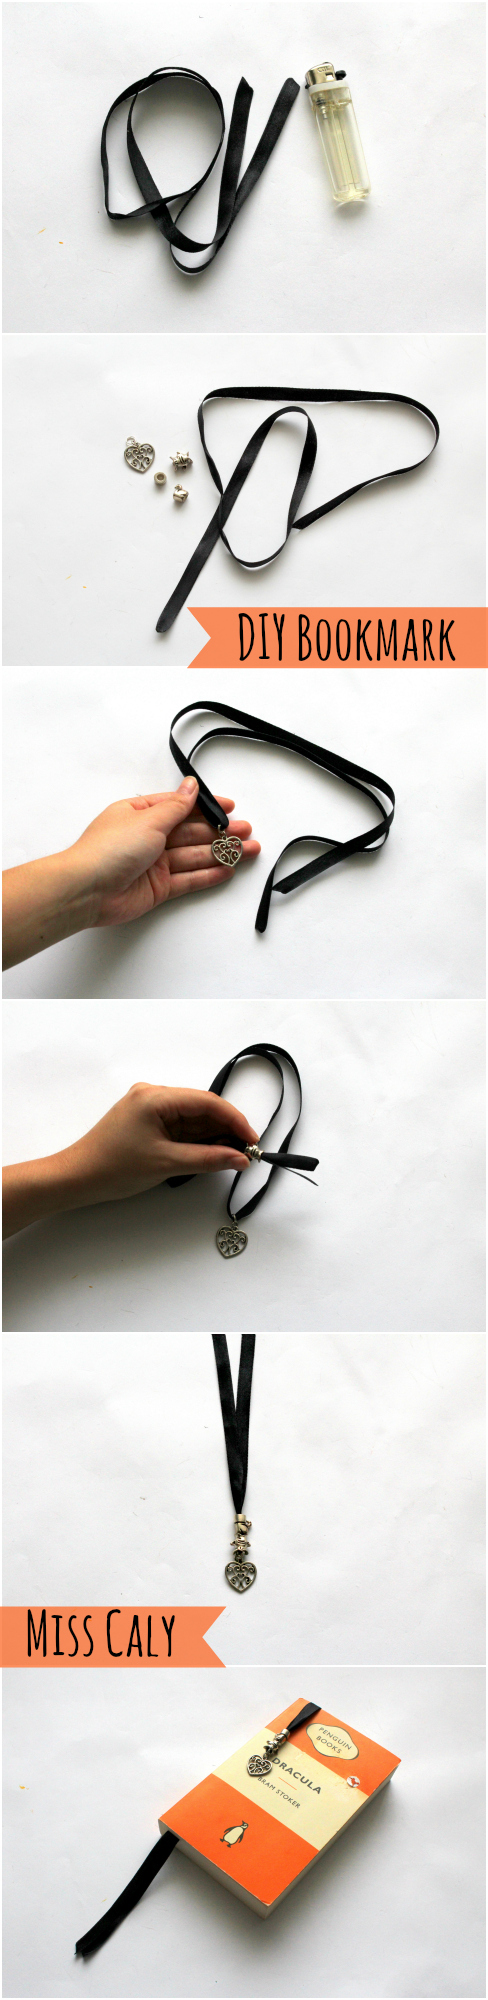 5 Minutes to Make a Classy Ribbon Bookmark - By Miss Caly